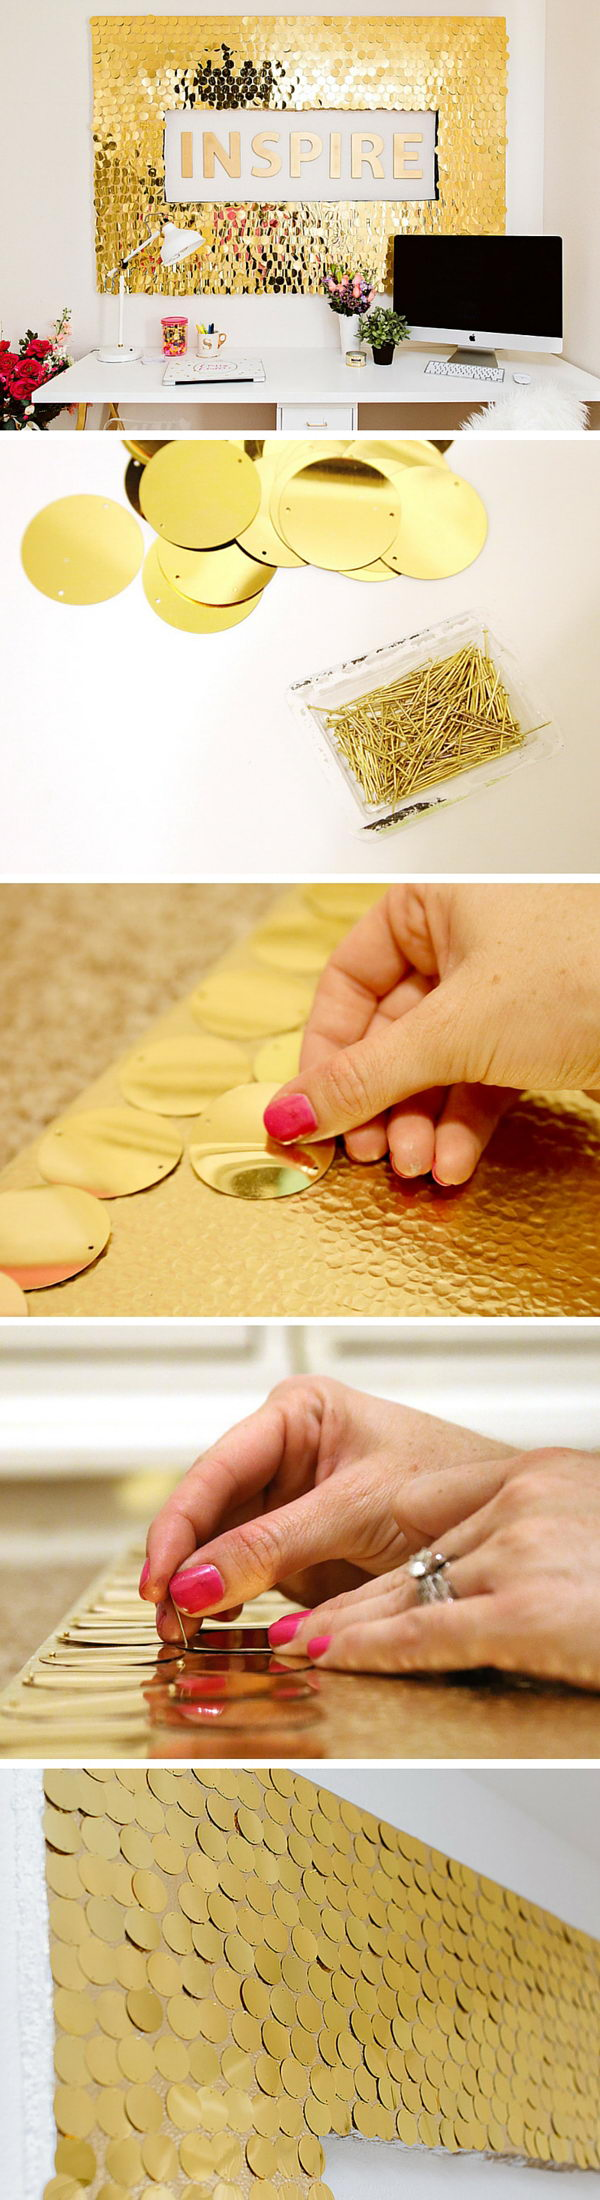 40 Awesome Wall Art DIY Ideas & Tutorials for Your Home Decoration 2017